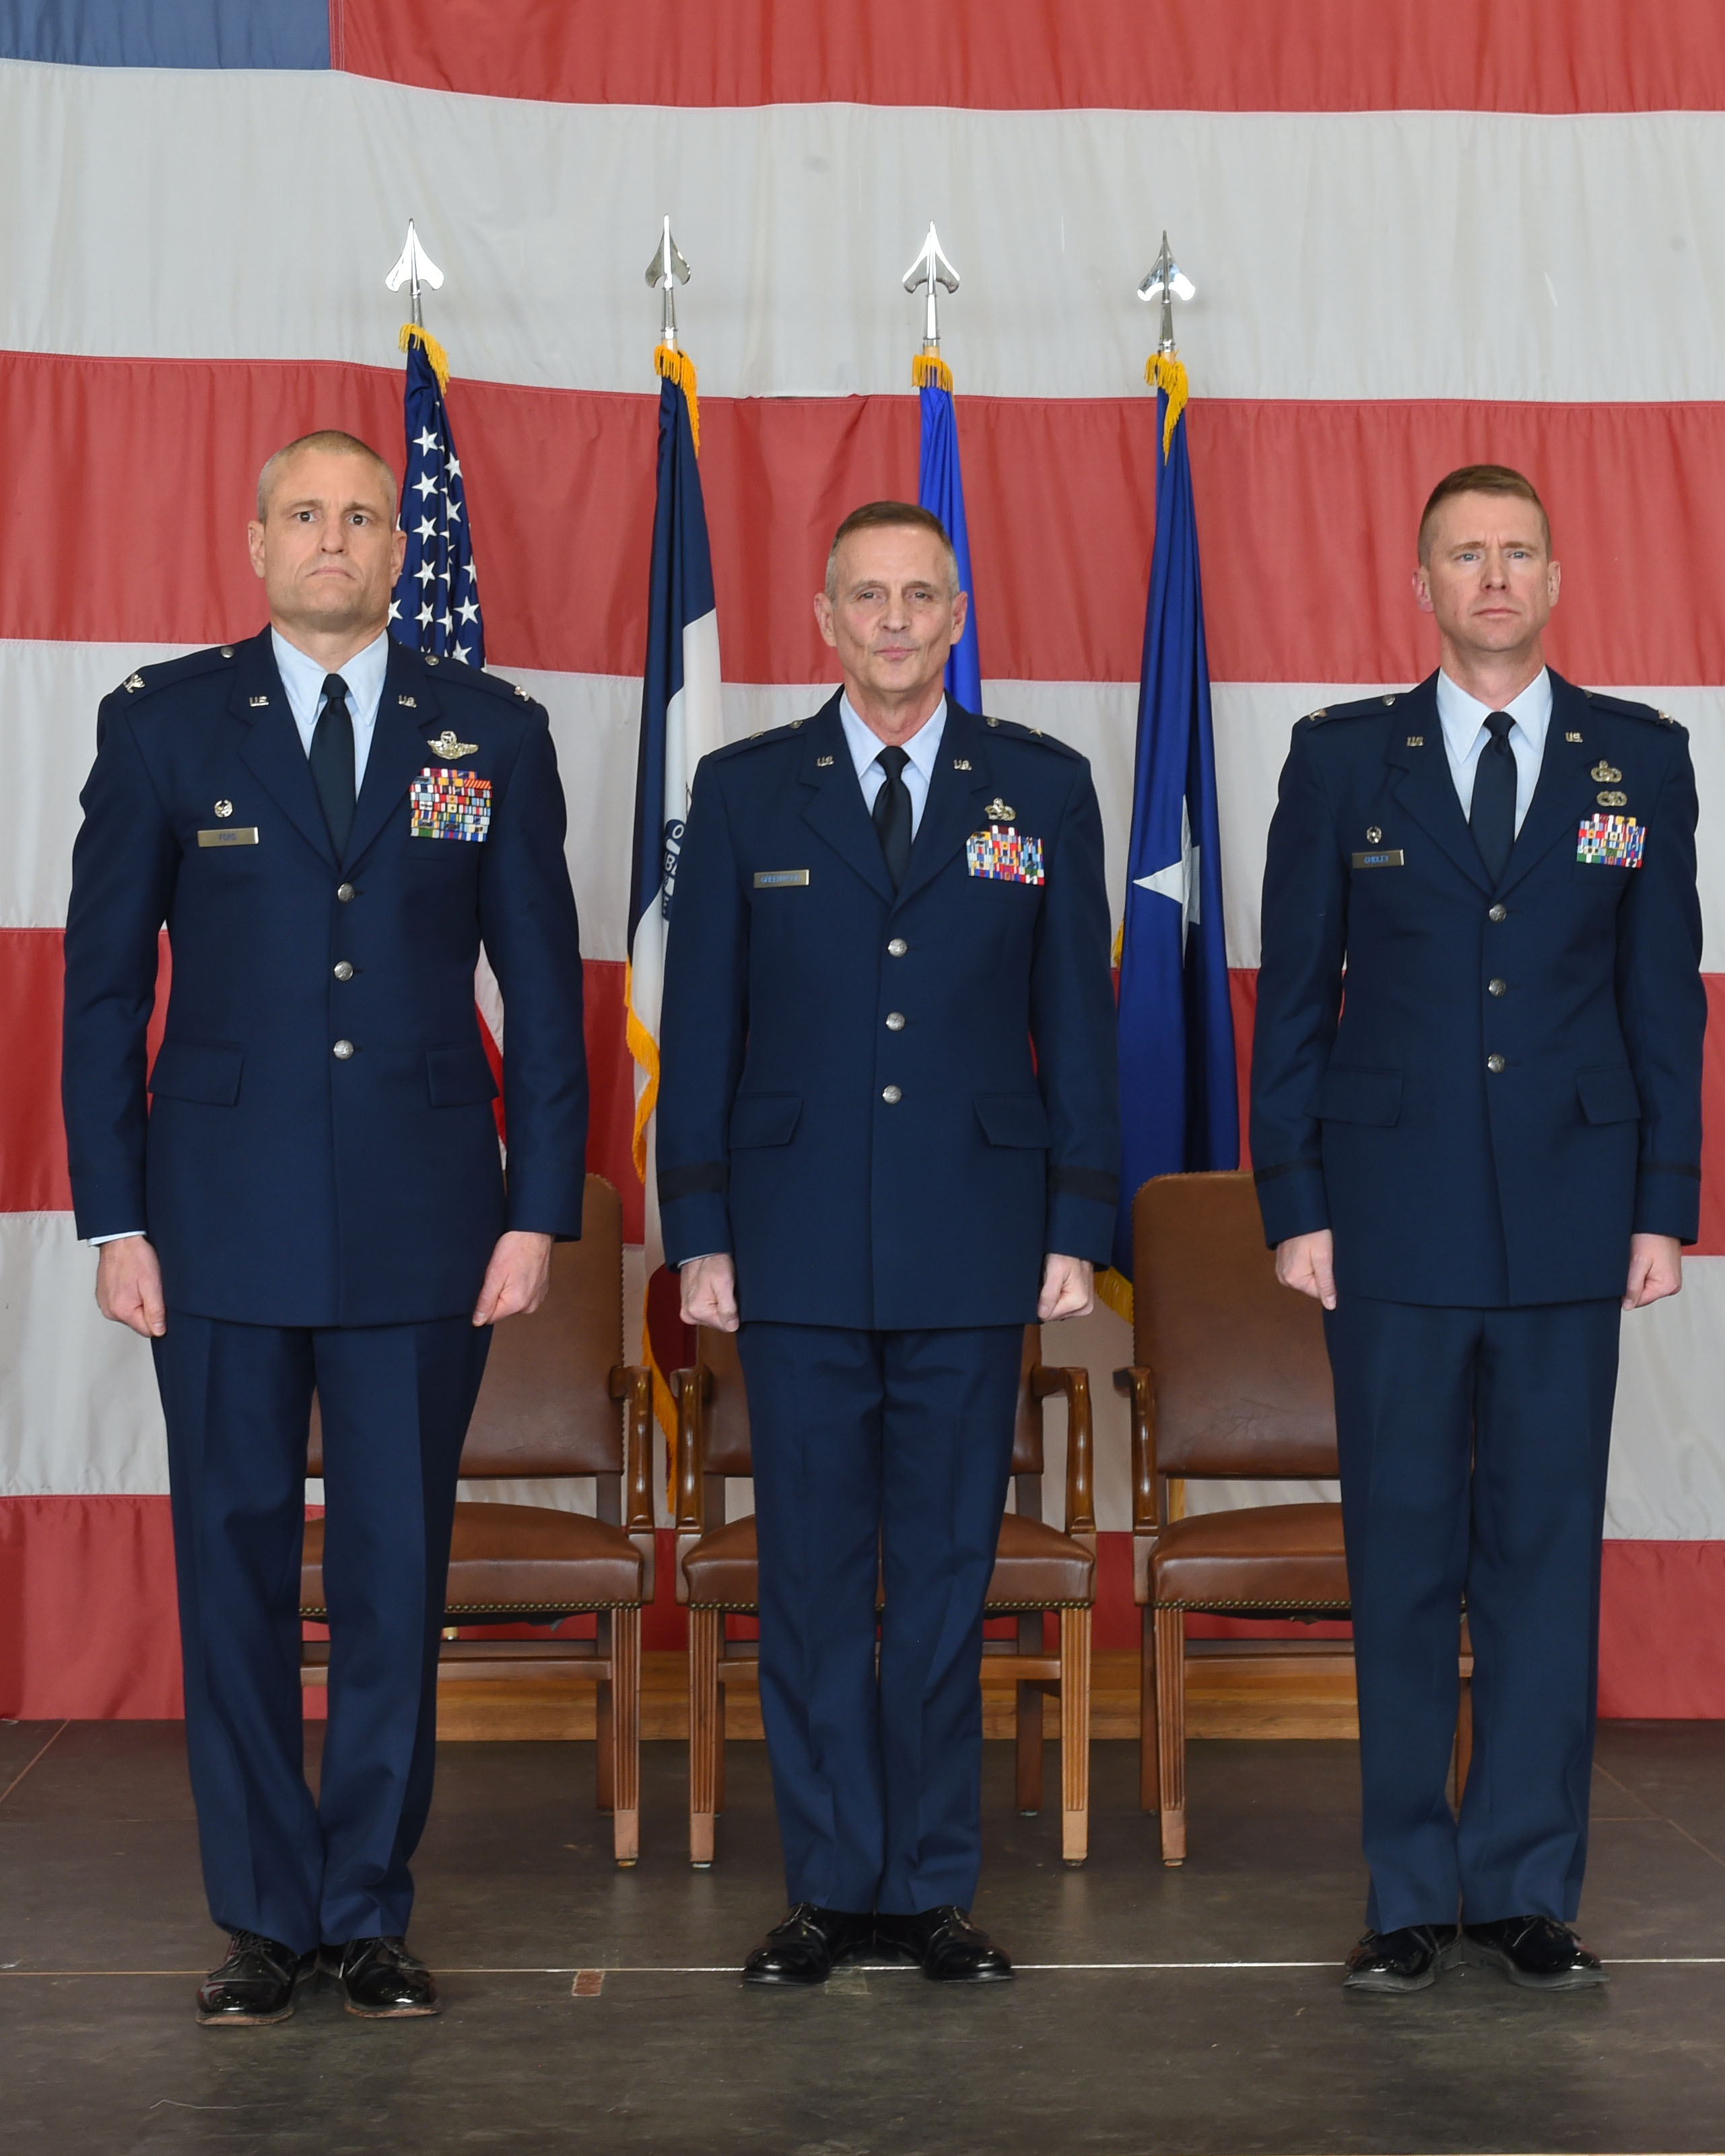 Chidley Assumes Command Of 132d Wing